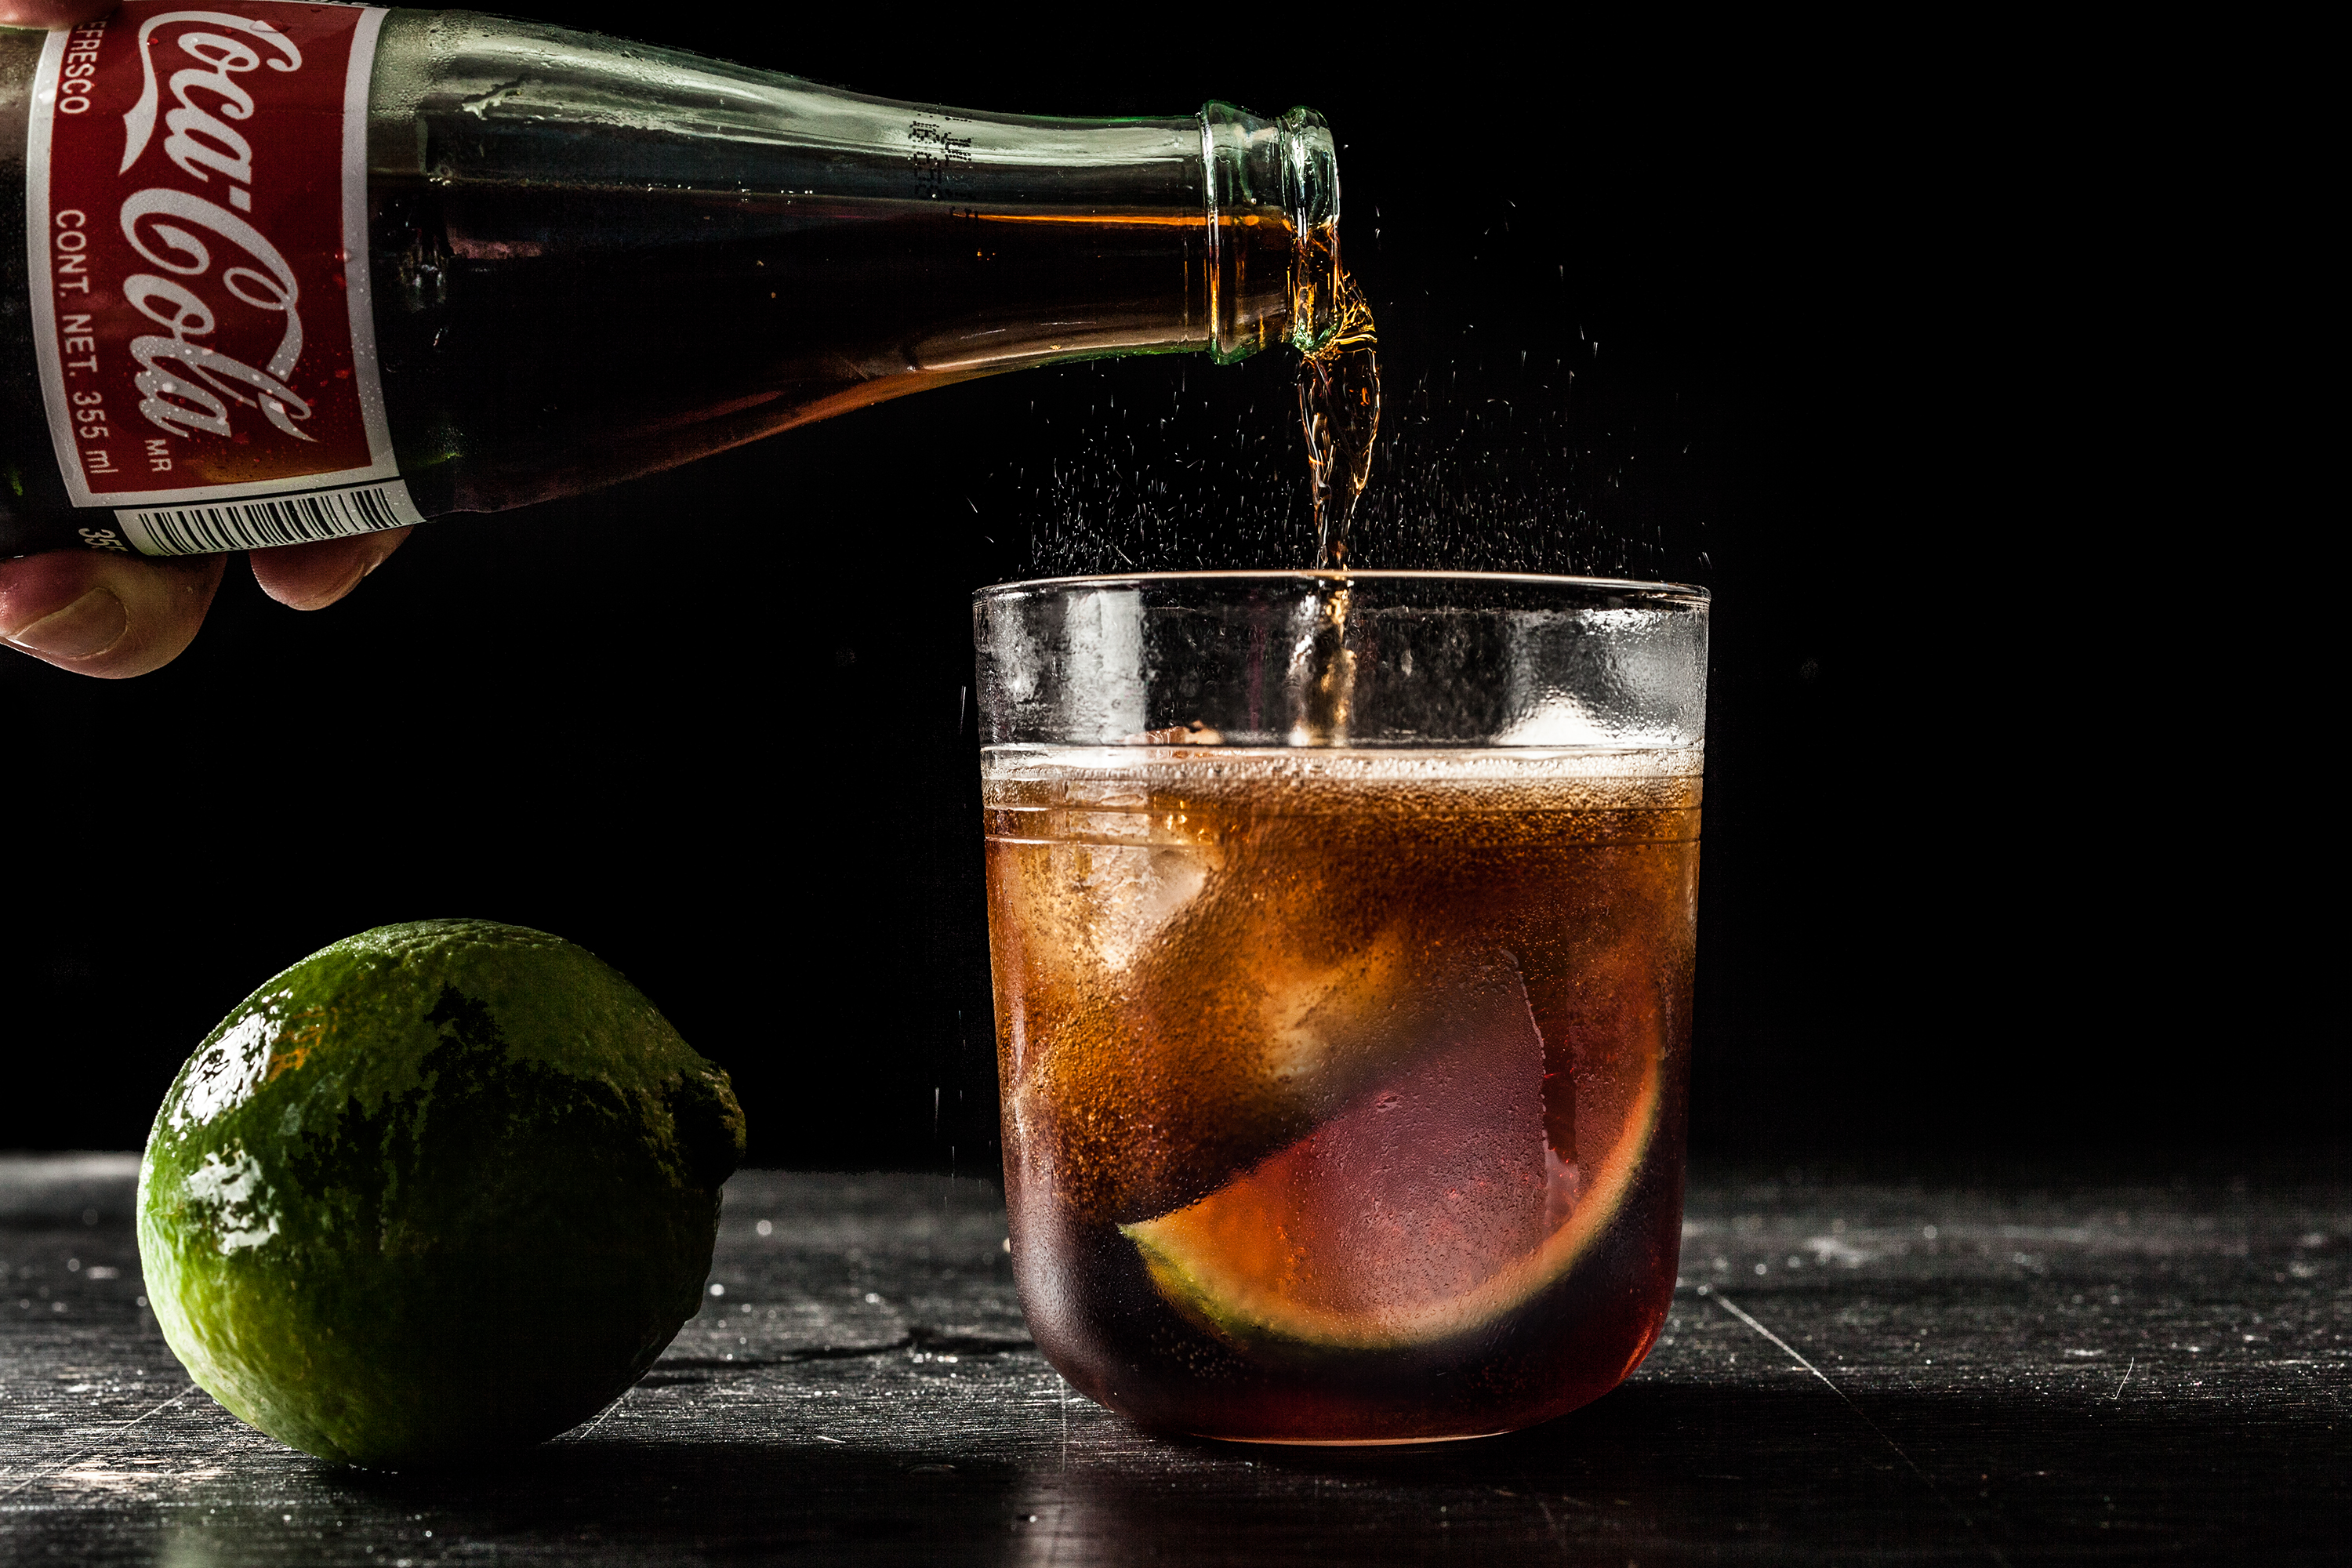 Cuba Libre Drink Bestselling Sodas In The World Based On Brand Value